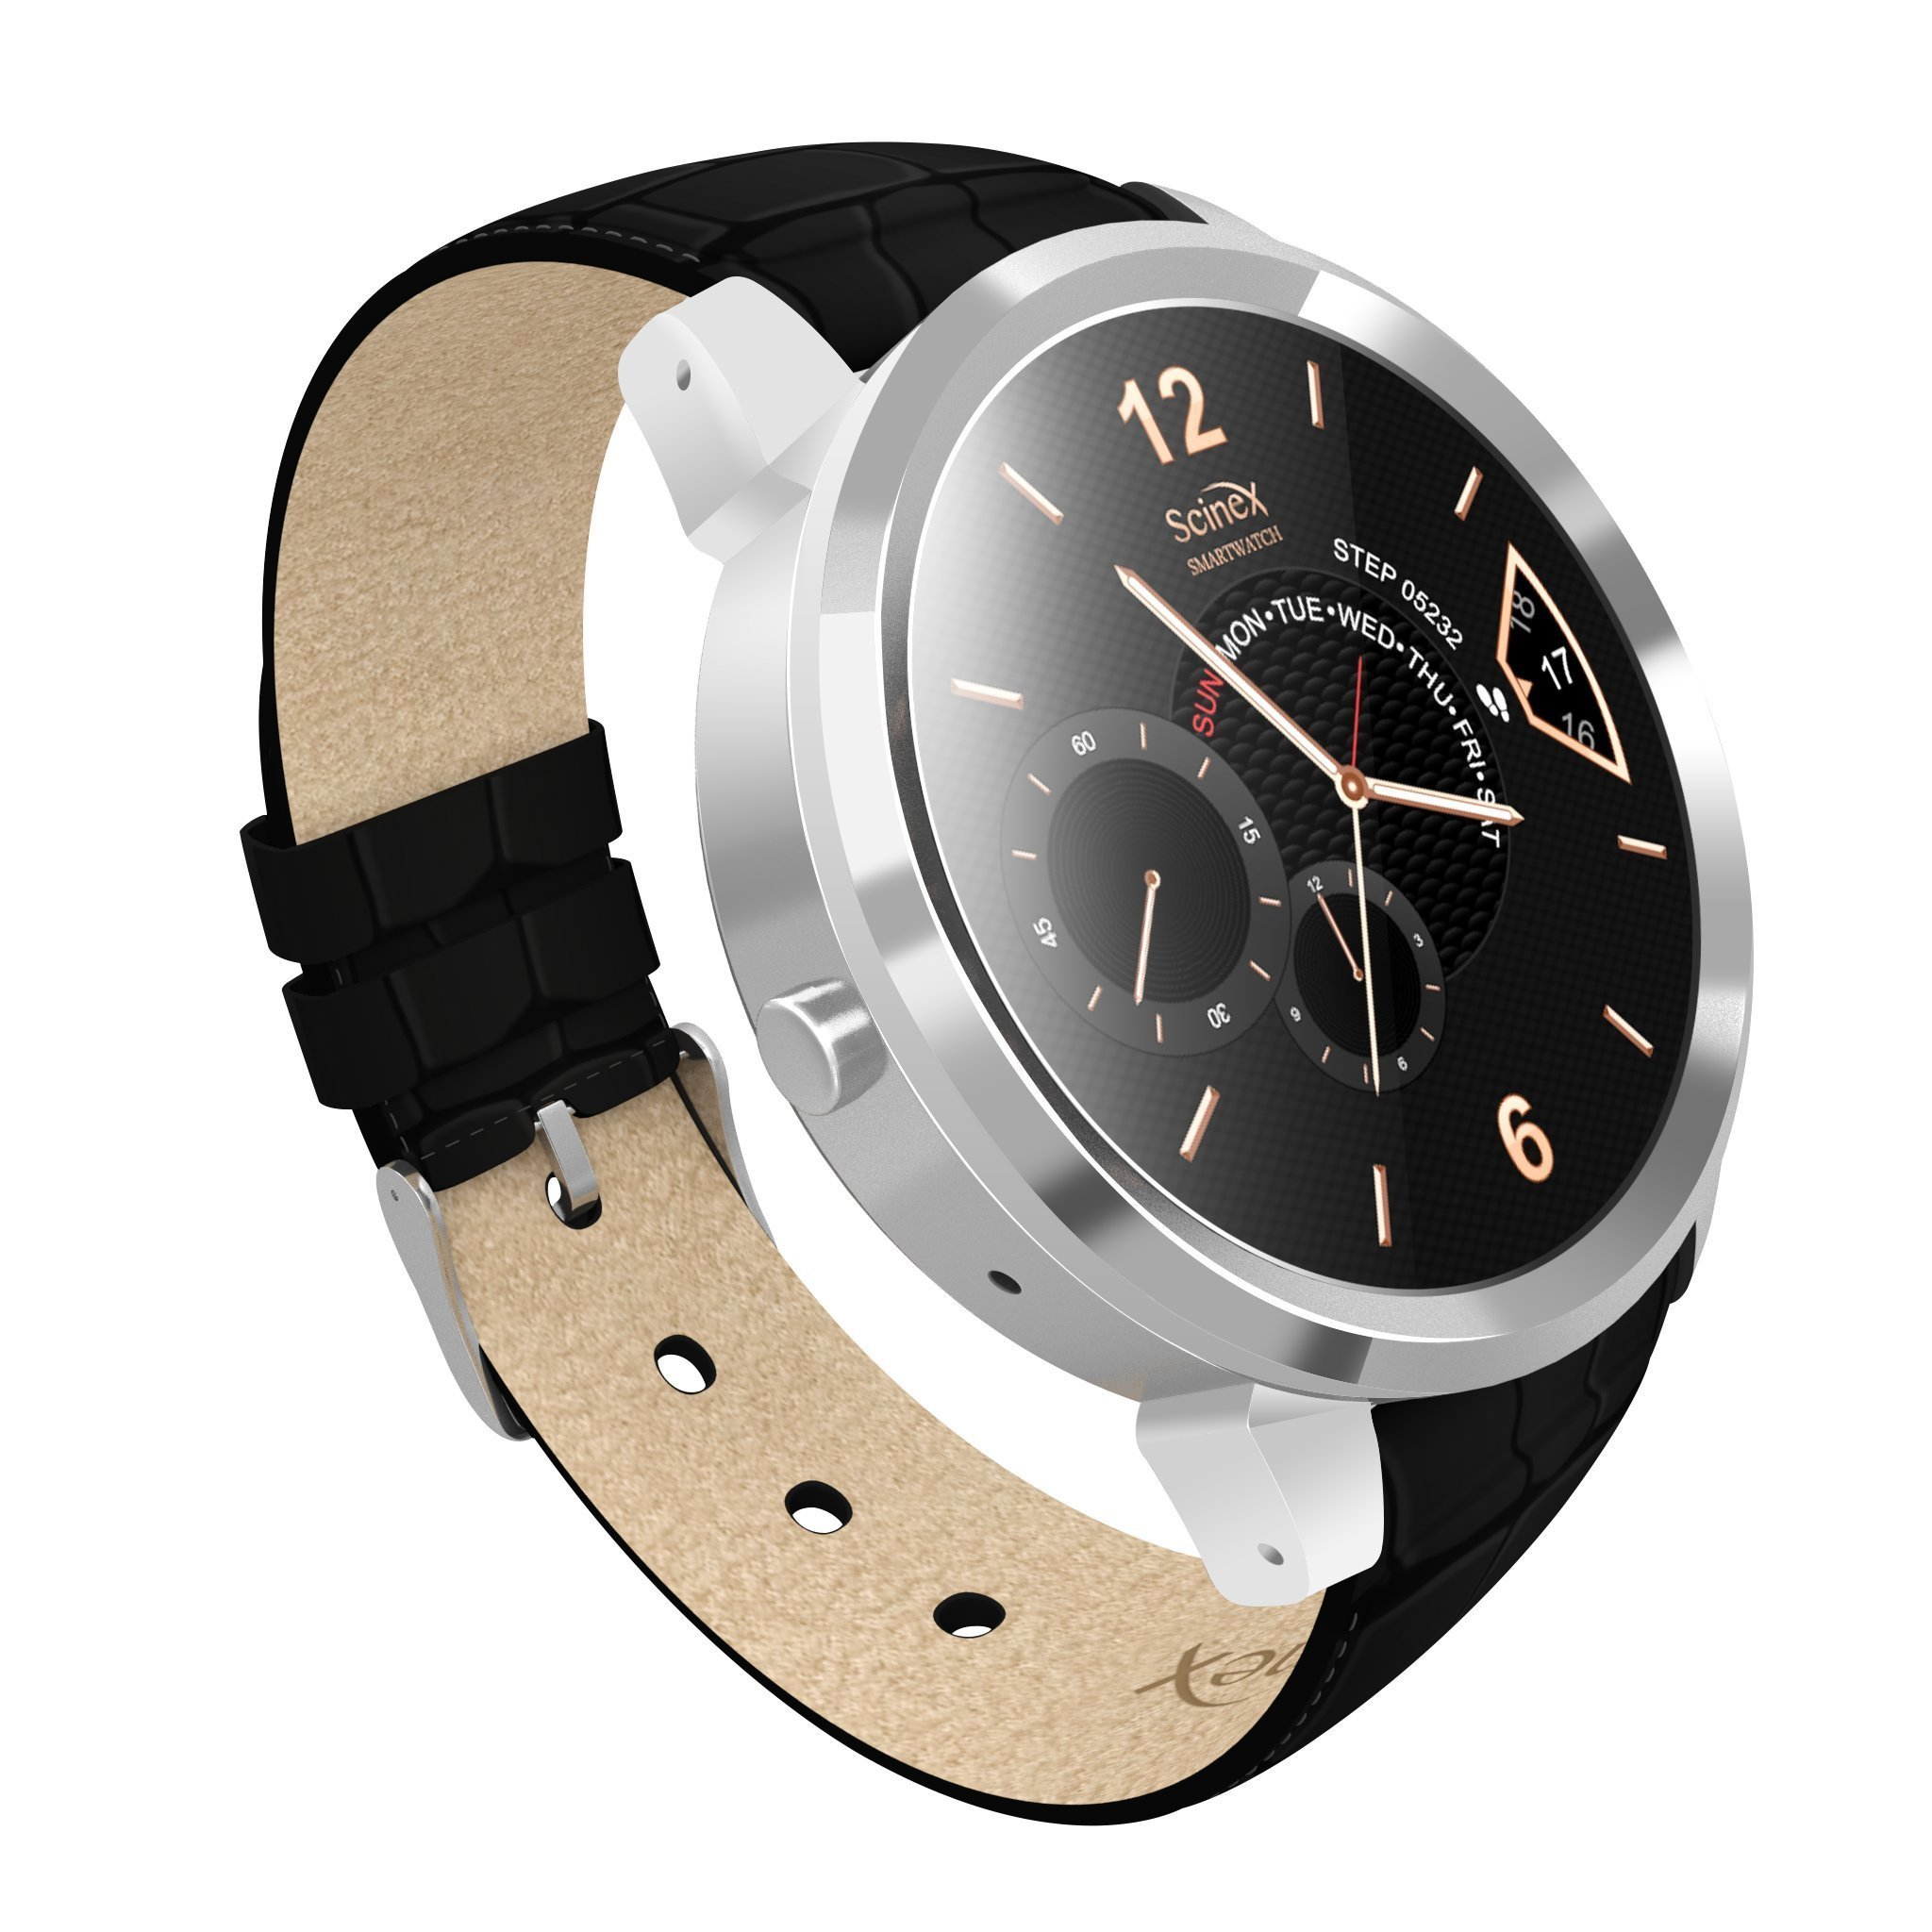 Scinex Halo Smart watch Android 5.1 (Silver Black)